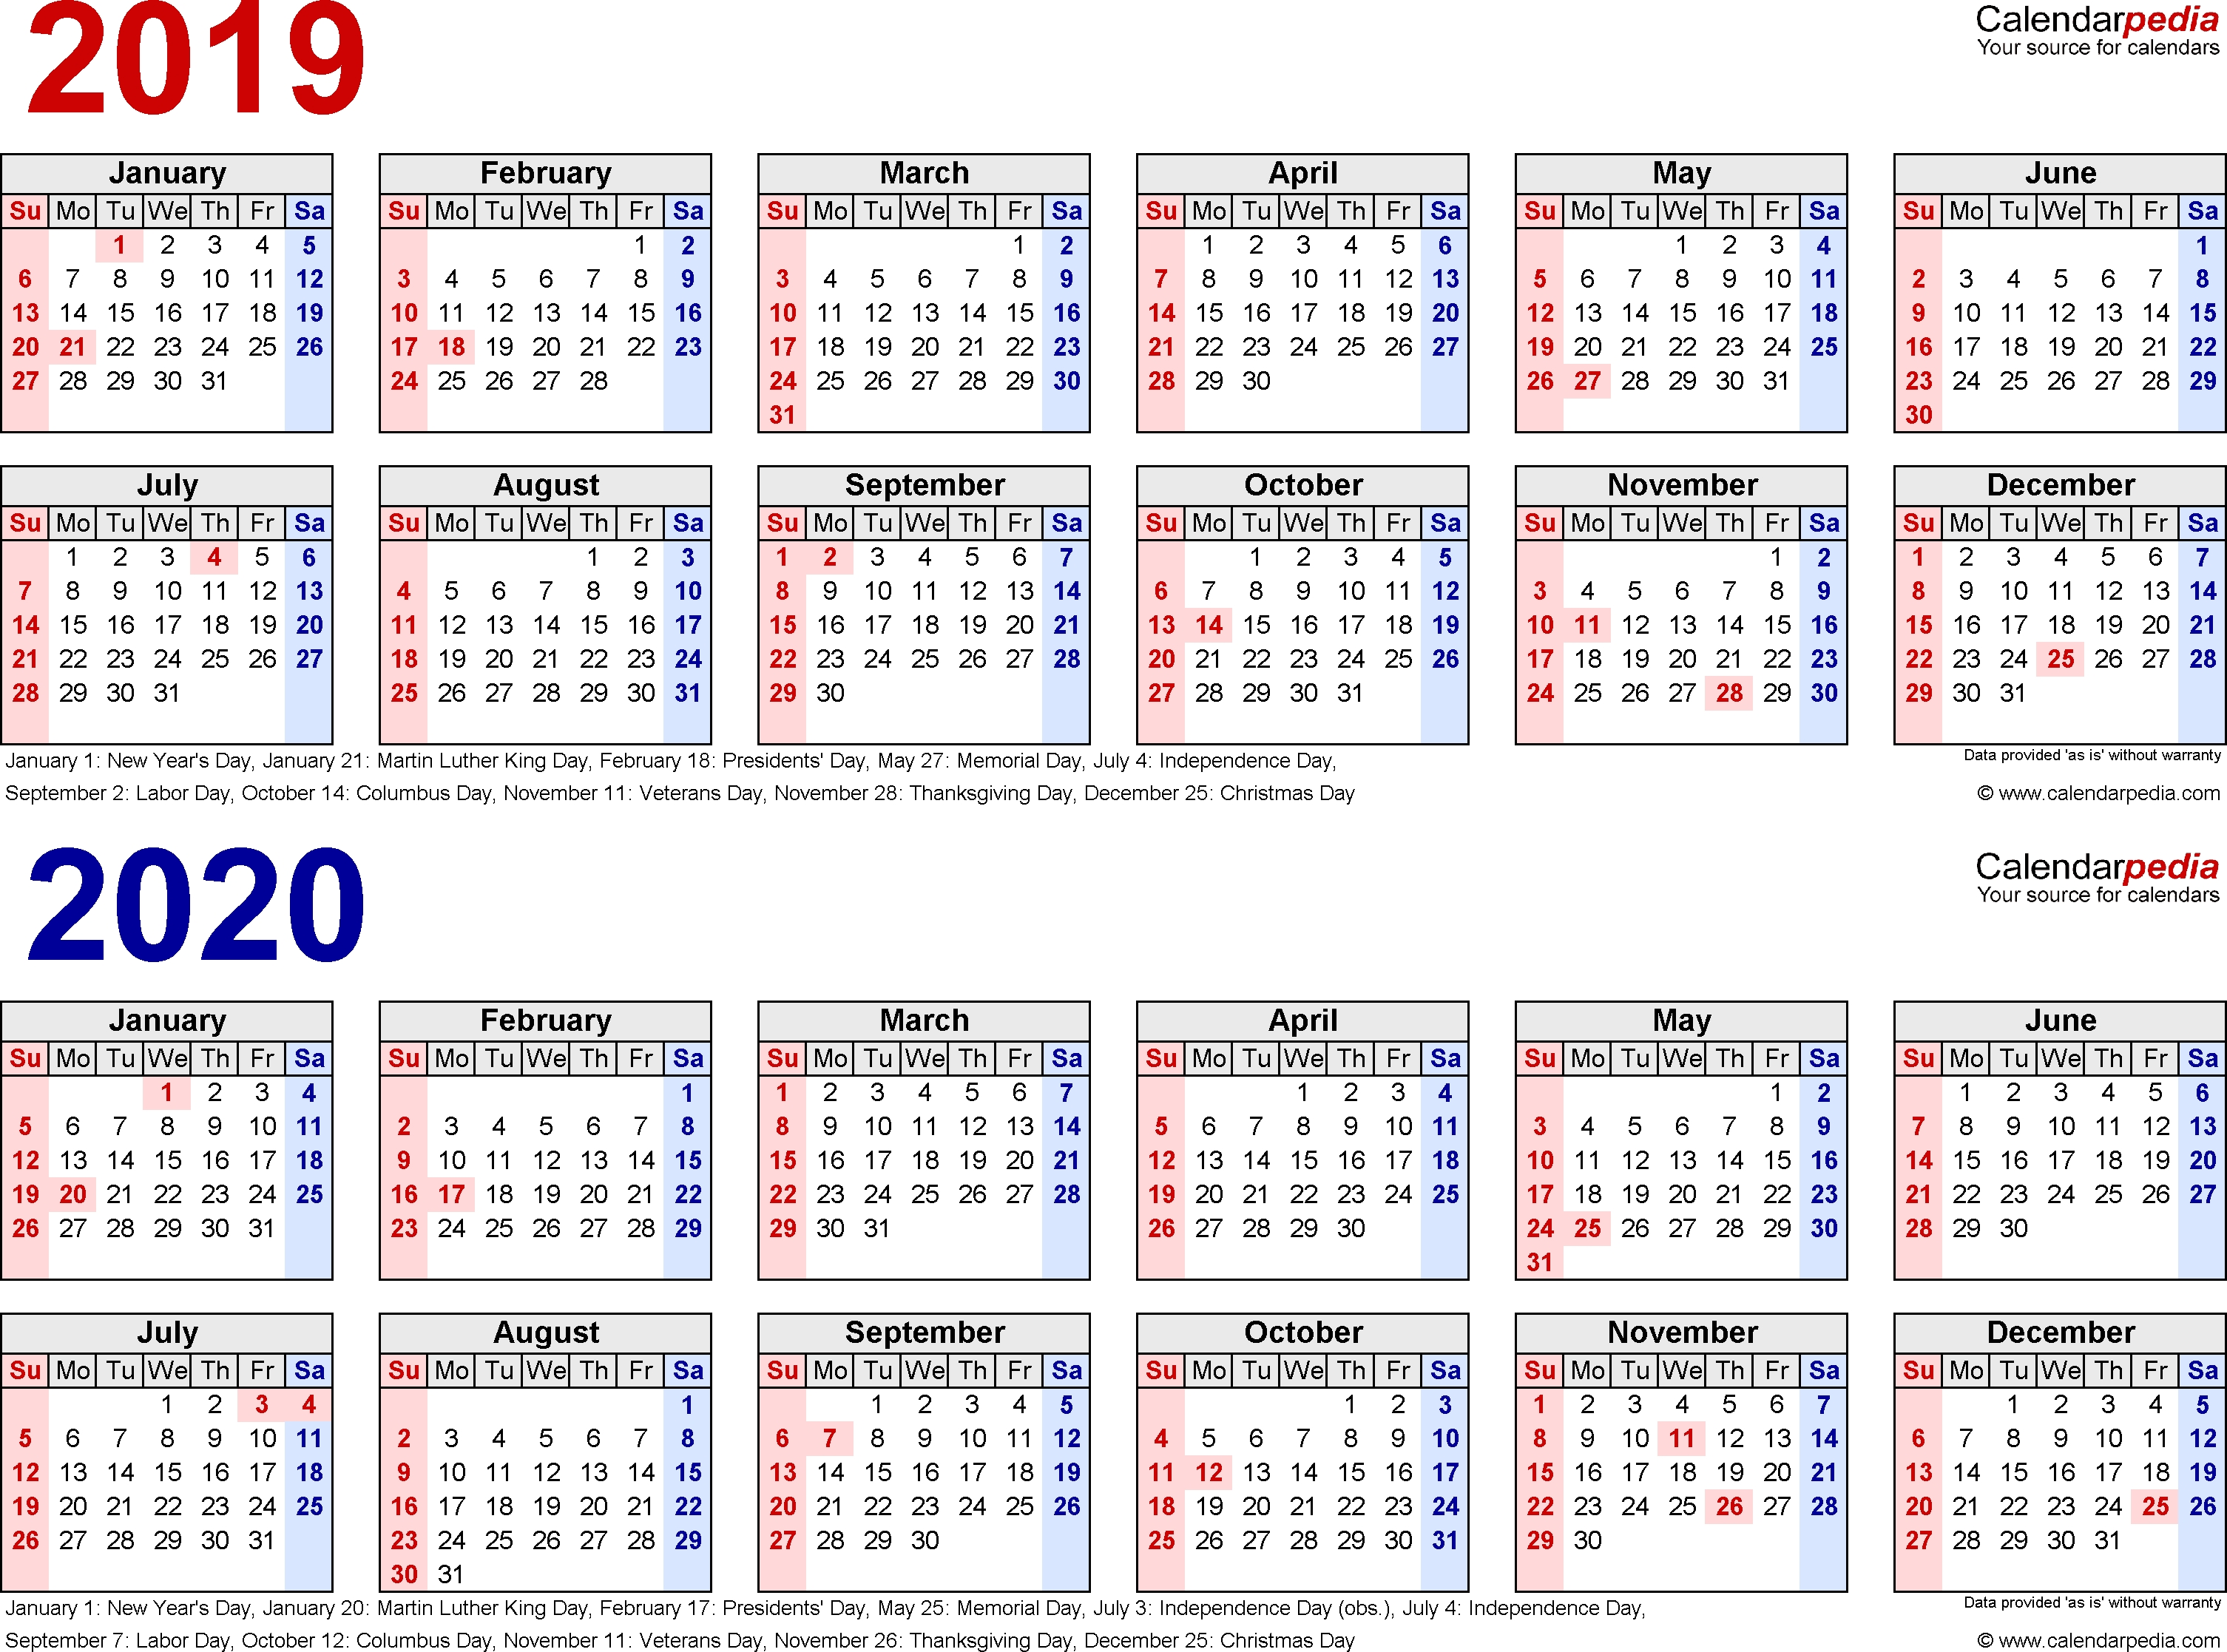 2019-2020 Calendar - Free Printable Two-Year Word Calendars intended for Calendar 2019 2020 With Boxes